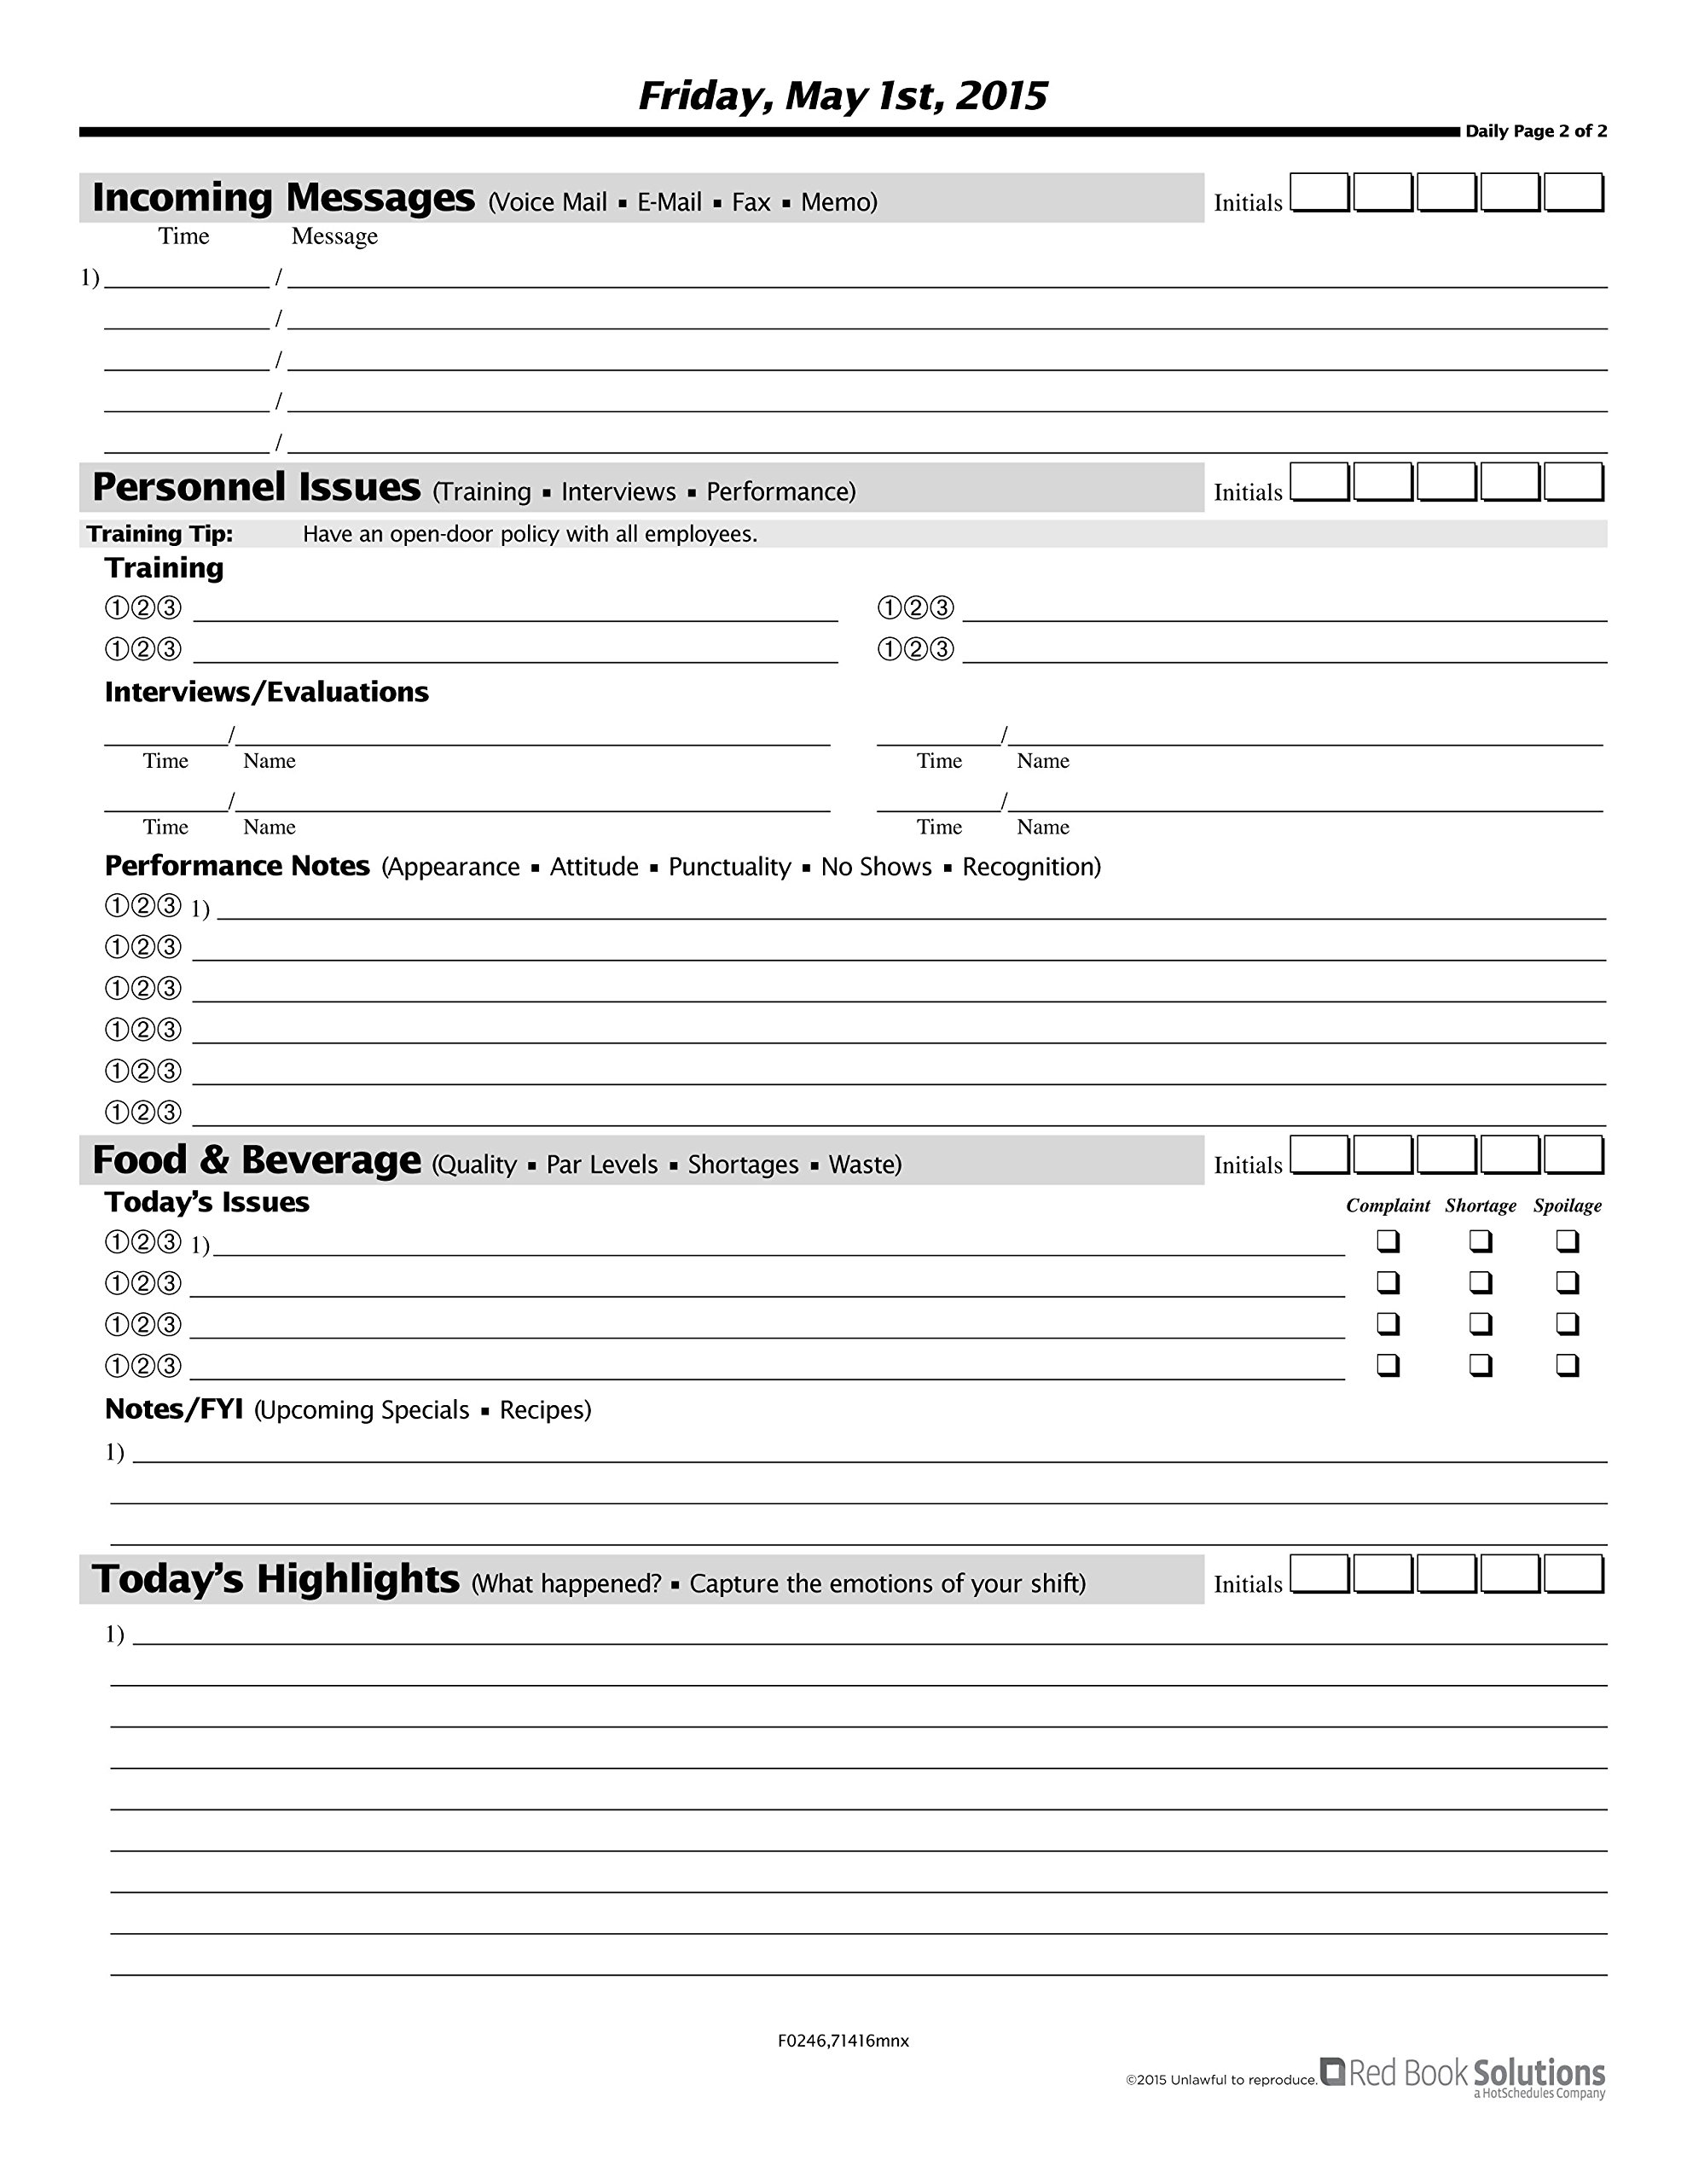 The Manager's Red Book - Full Service restaurant communication logbook, 8.5''x11'' quarterly, 266 pages, 2 daily pages (F0246) (October - December 2018)